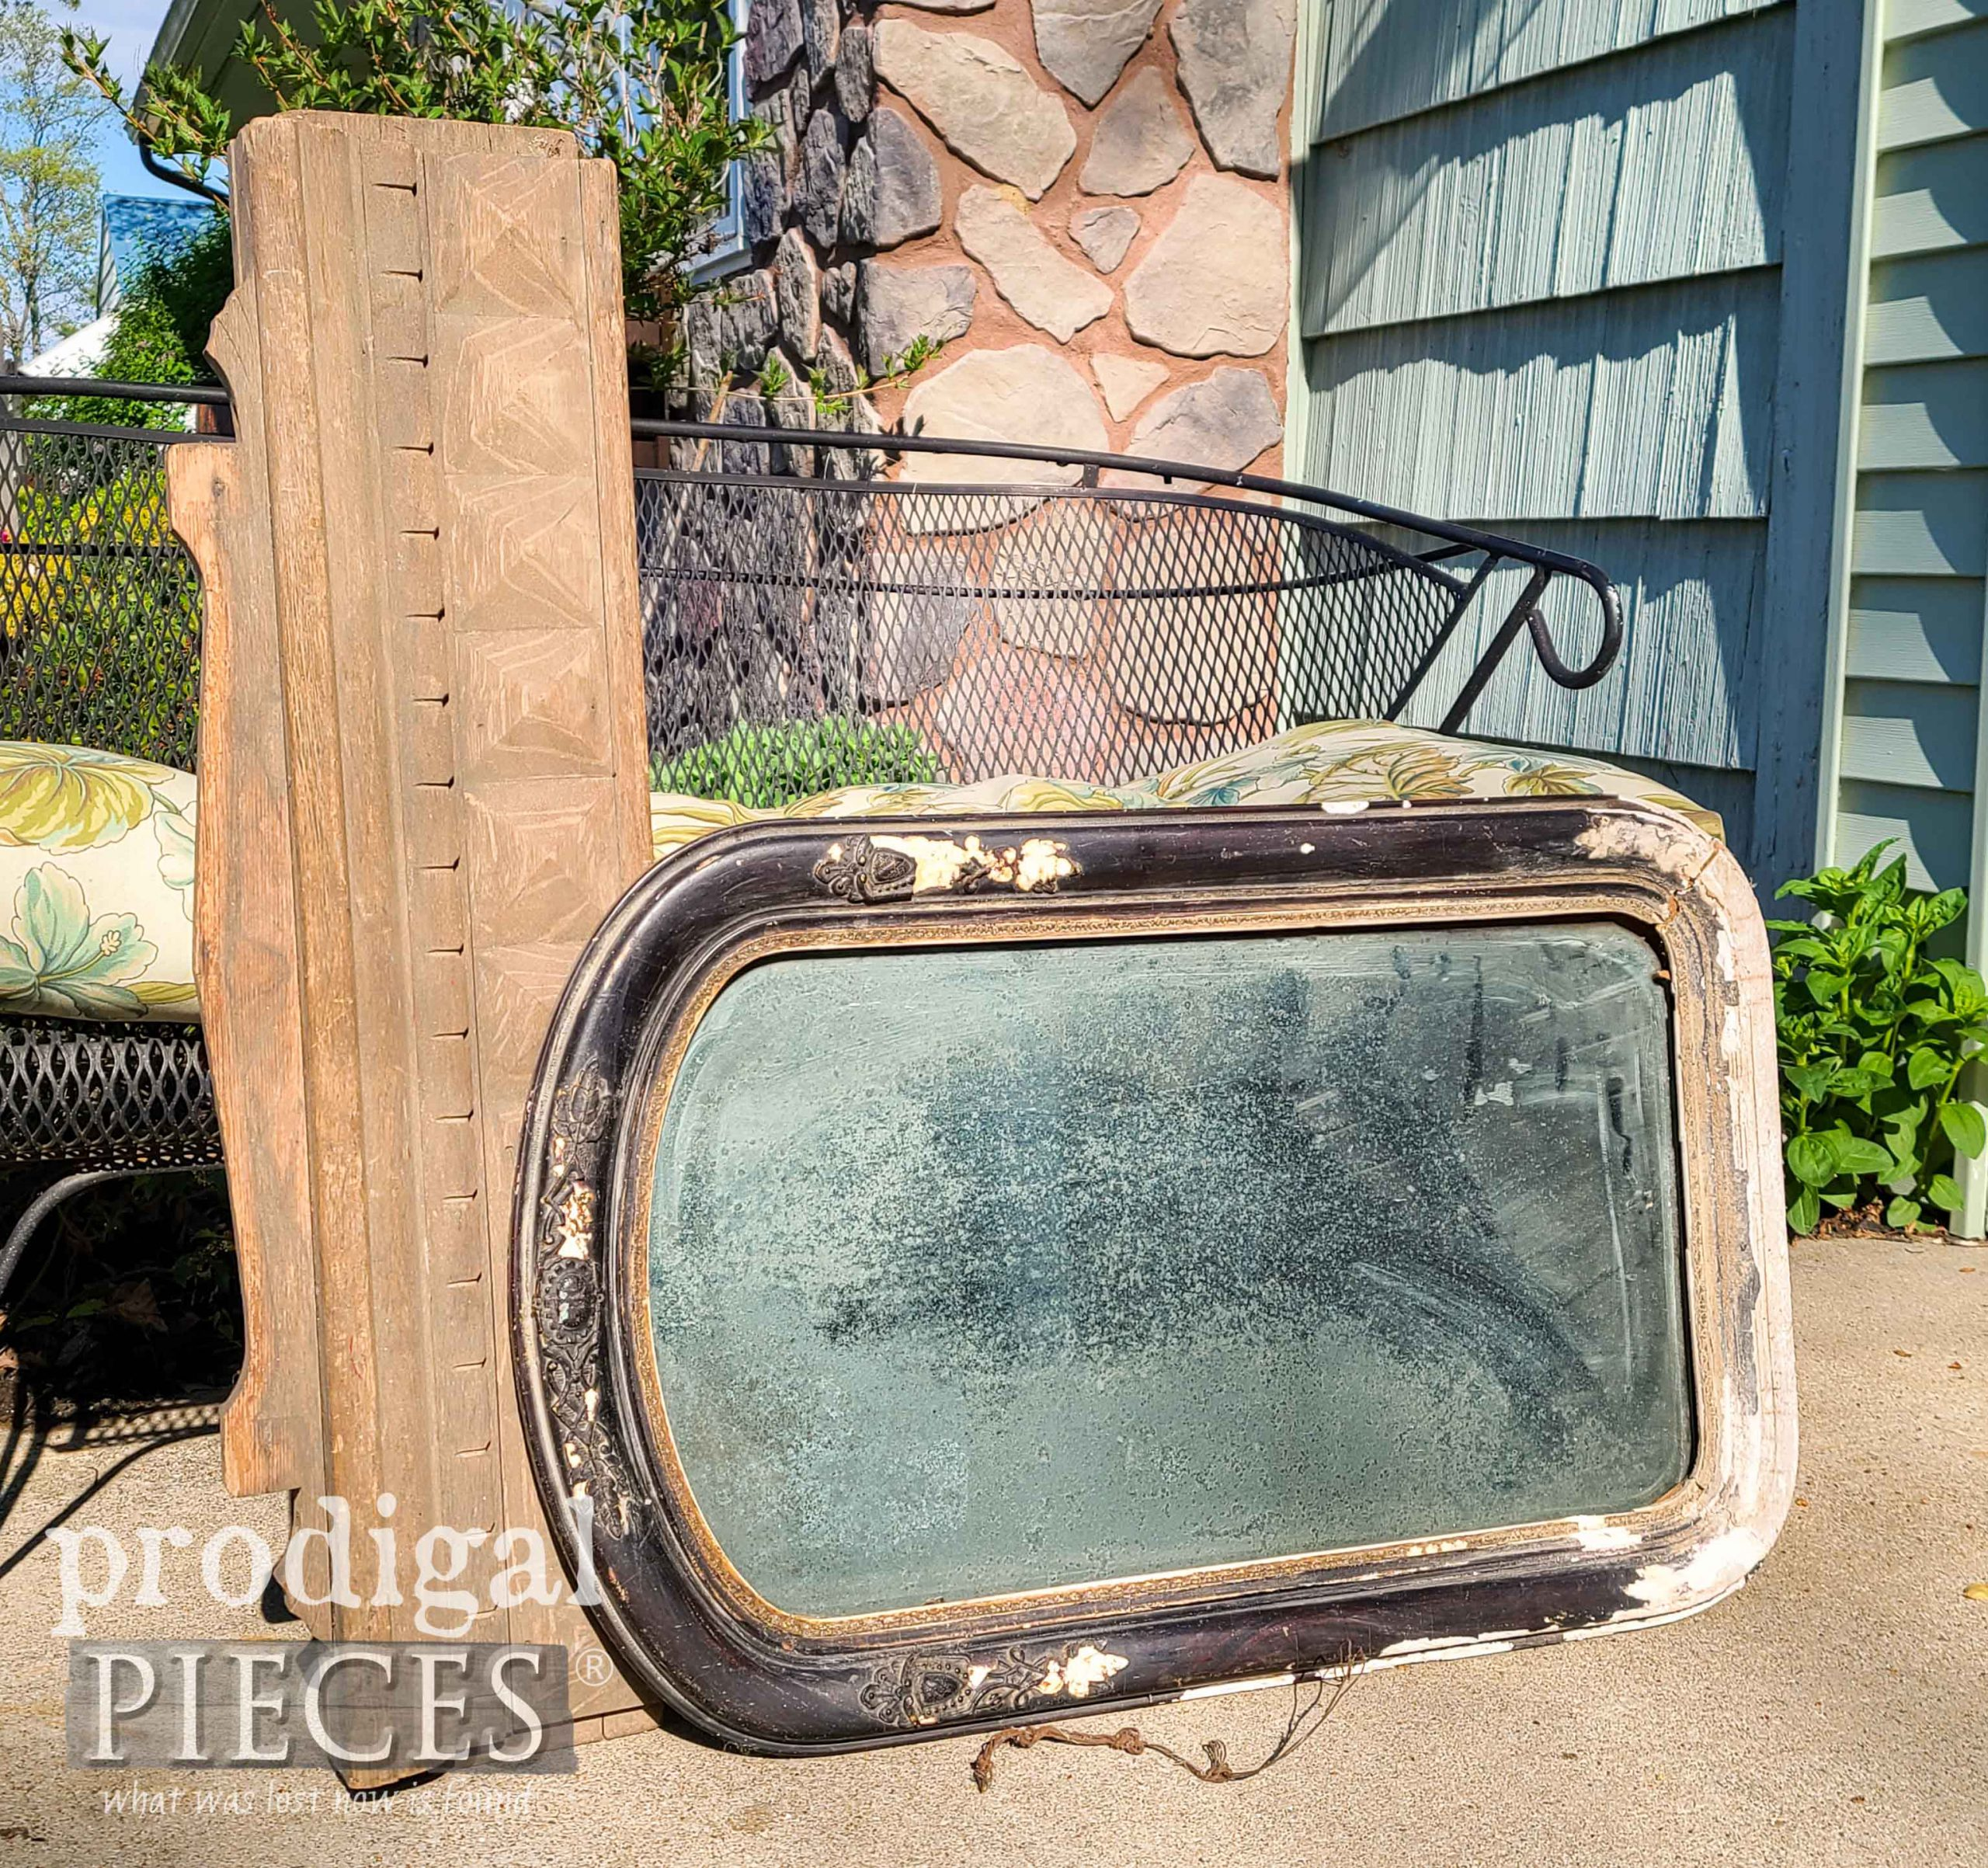 Salvaged Decor Before Fixin' Up by Prodigal Pieces | prodigalpieces.com